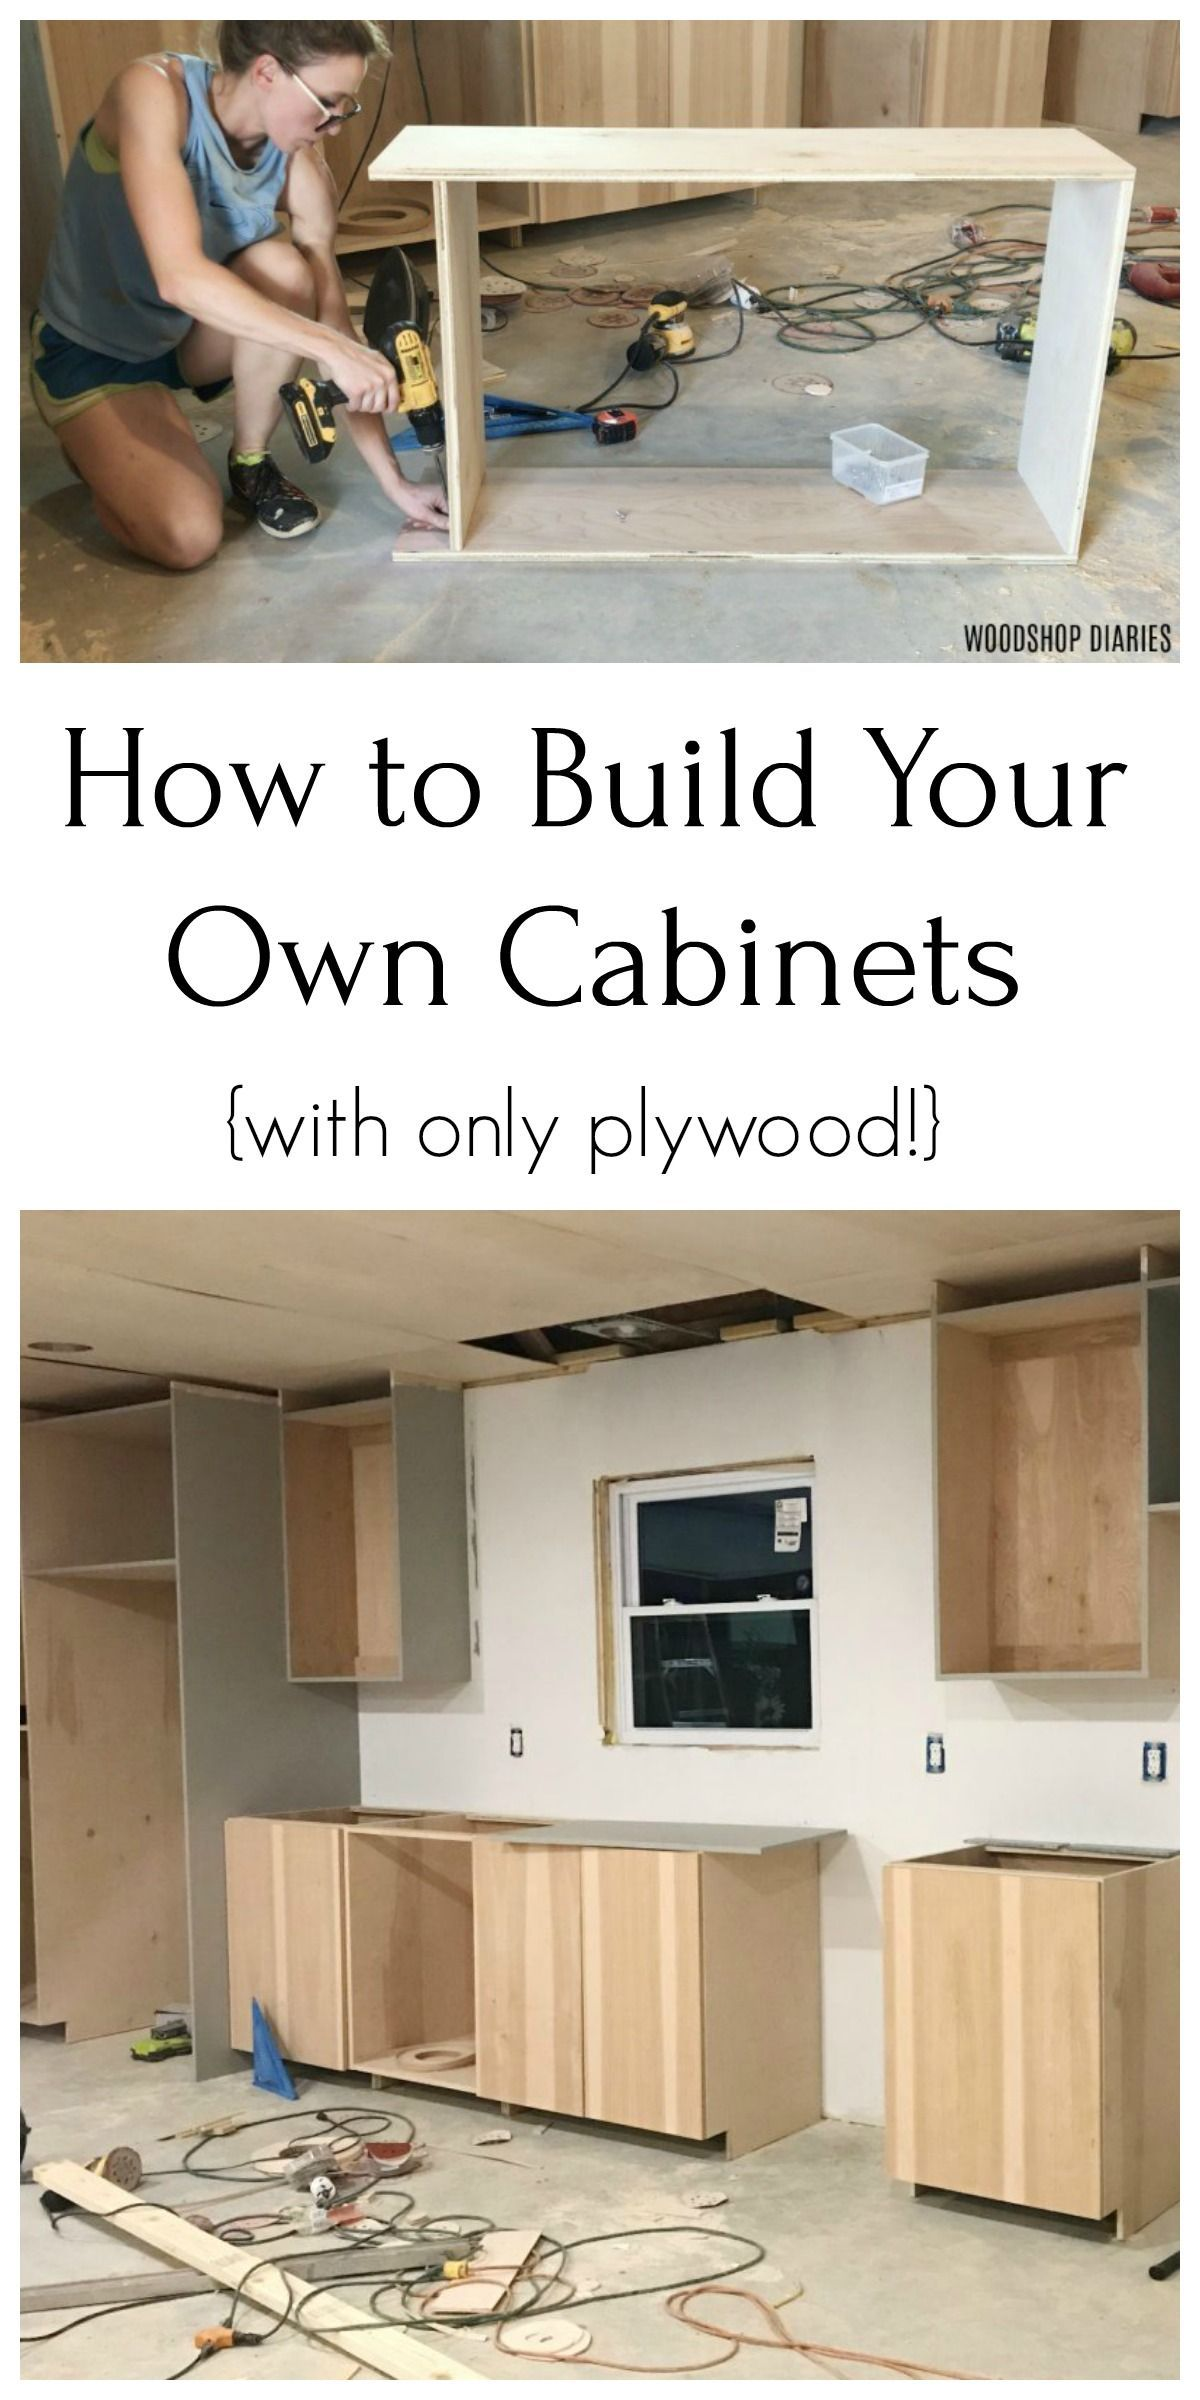 Build Your Own Cabinets From Only Plywood In 2020 Diy Kitchen Cabinets Build Building Kitchen Cabinets Kitchen Design Diy